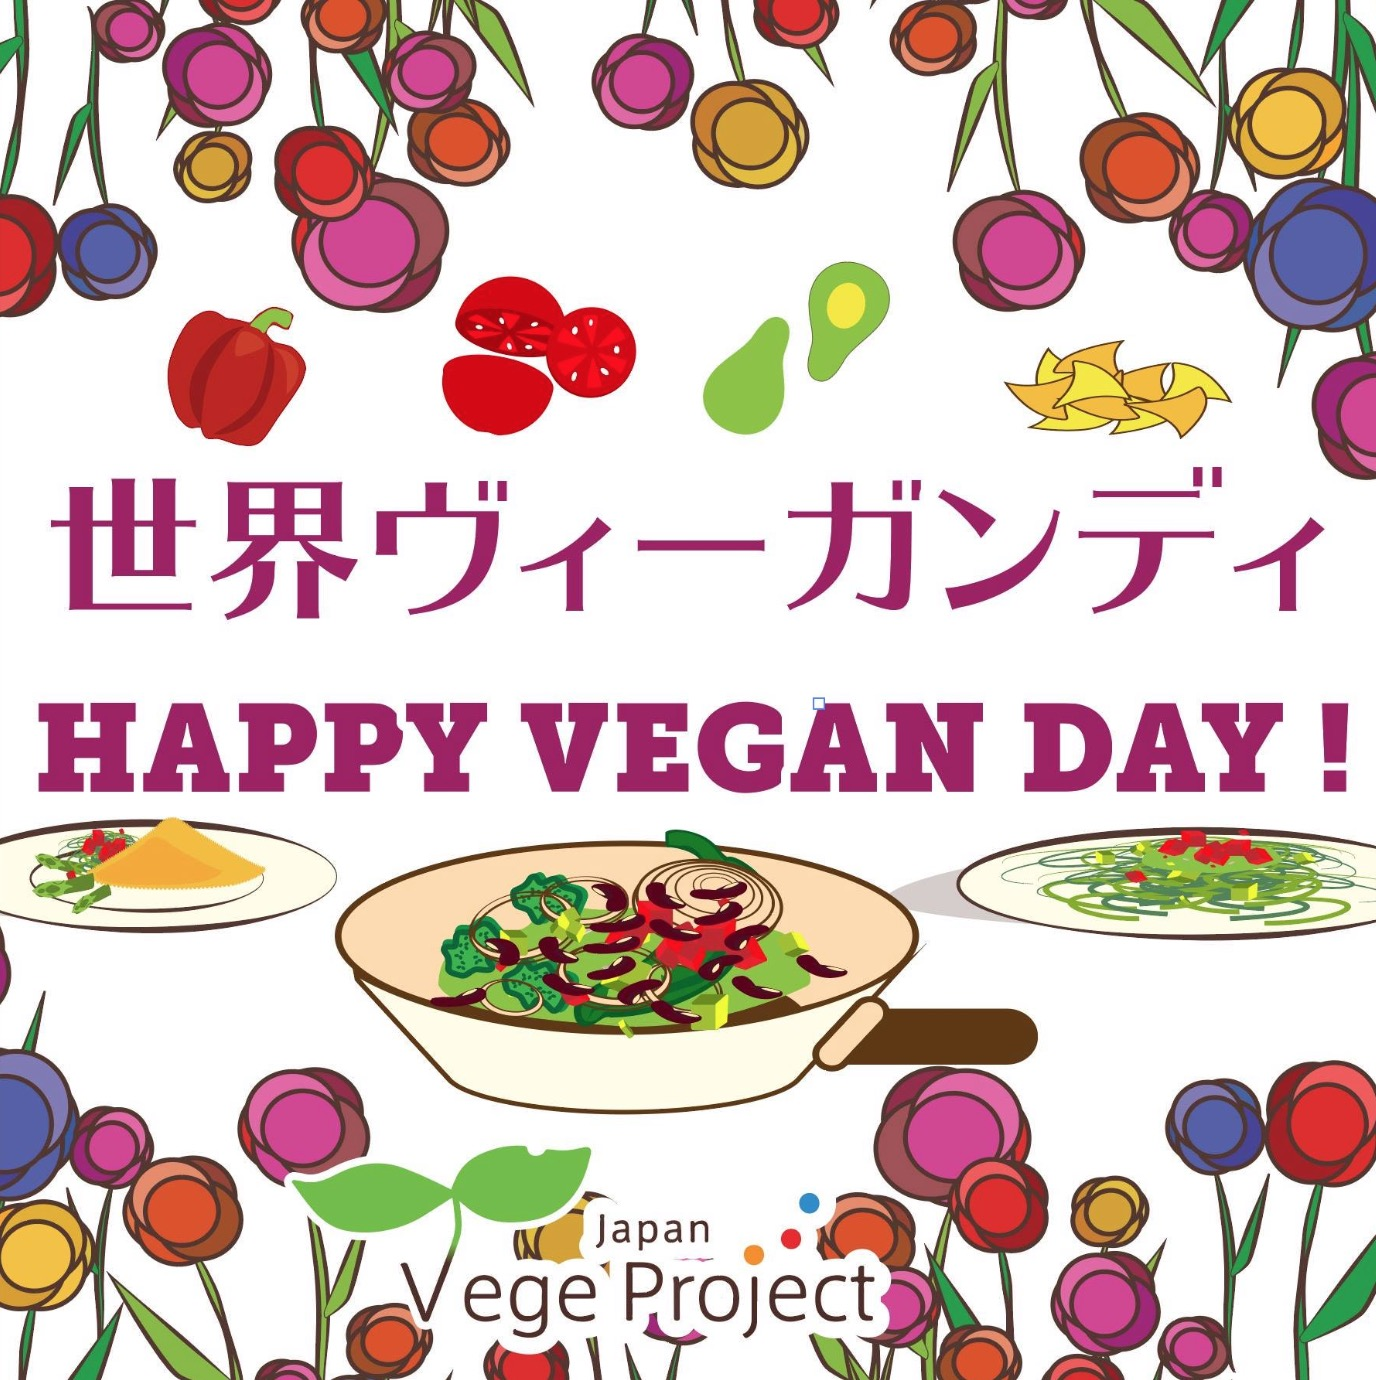 vegeproject veganday